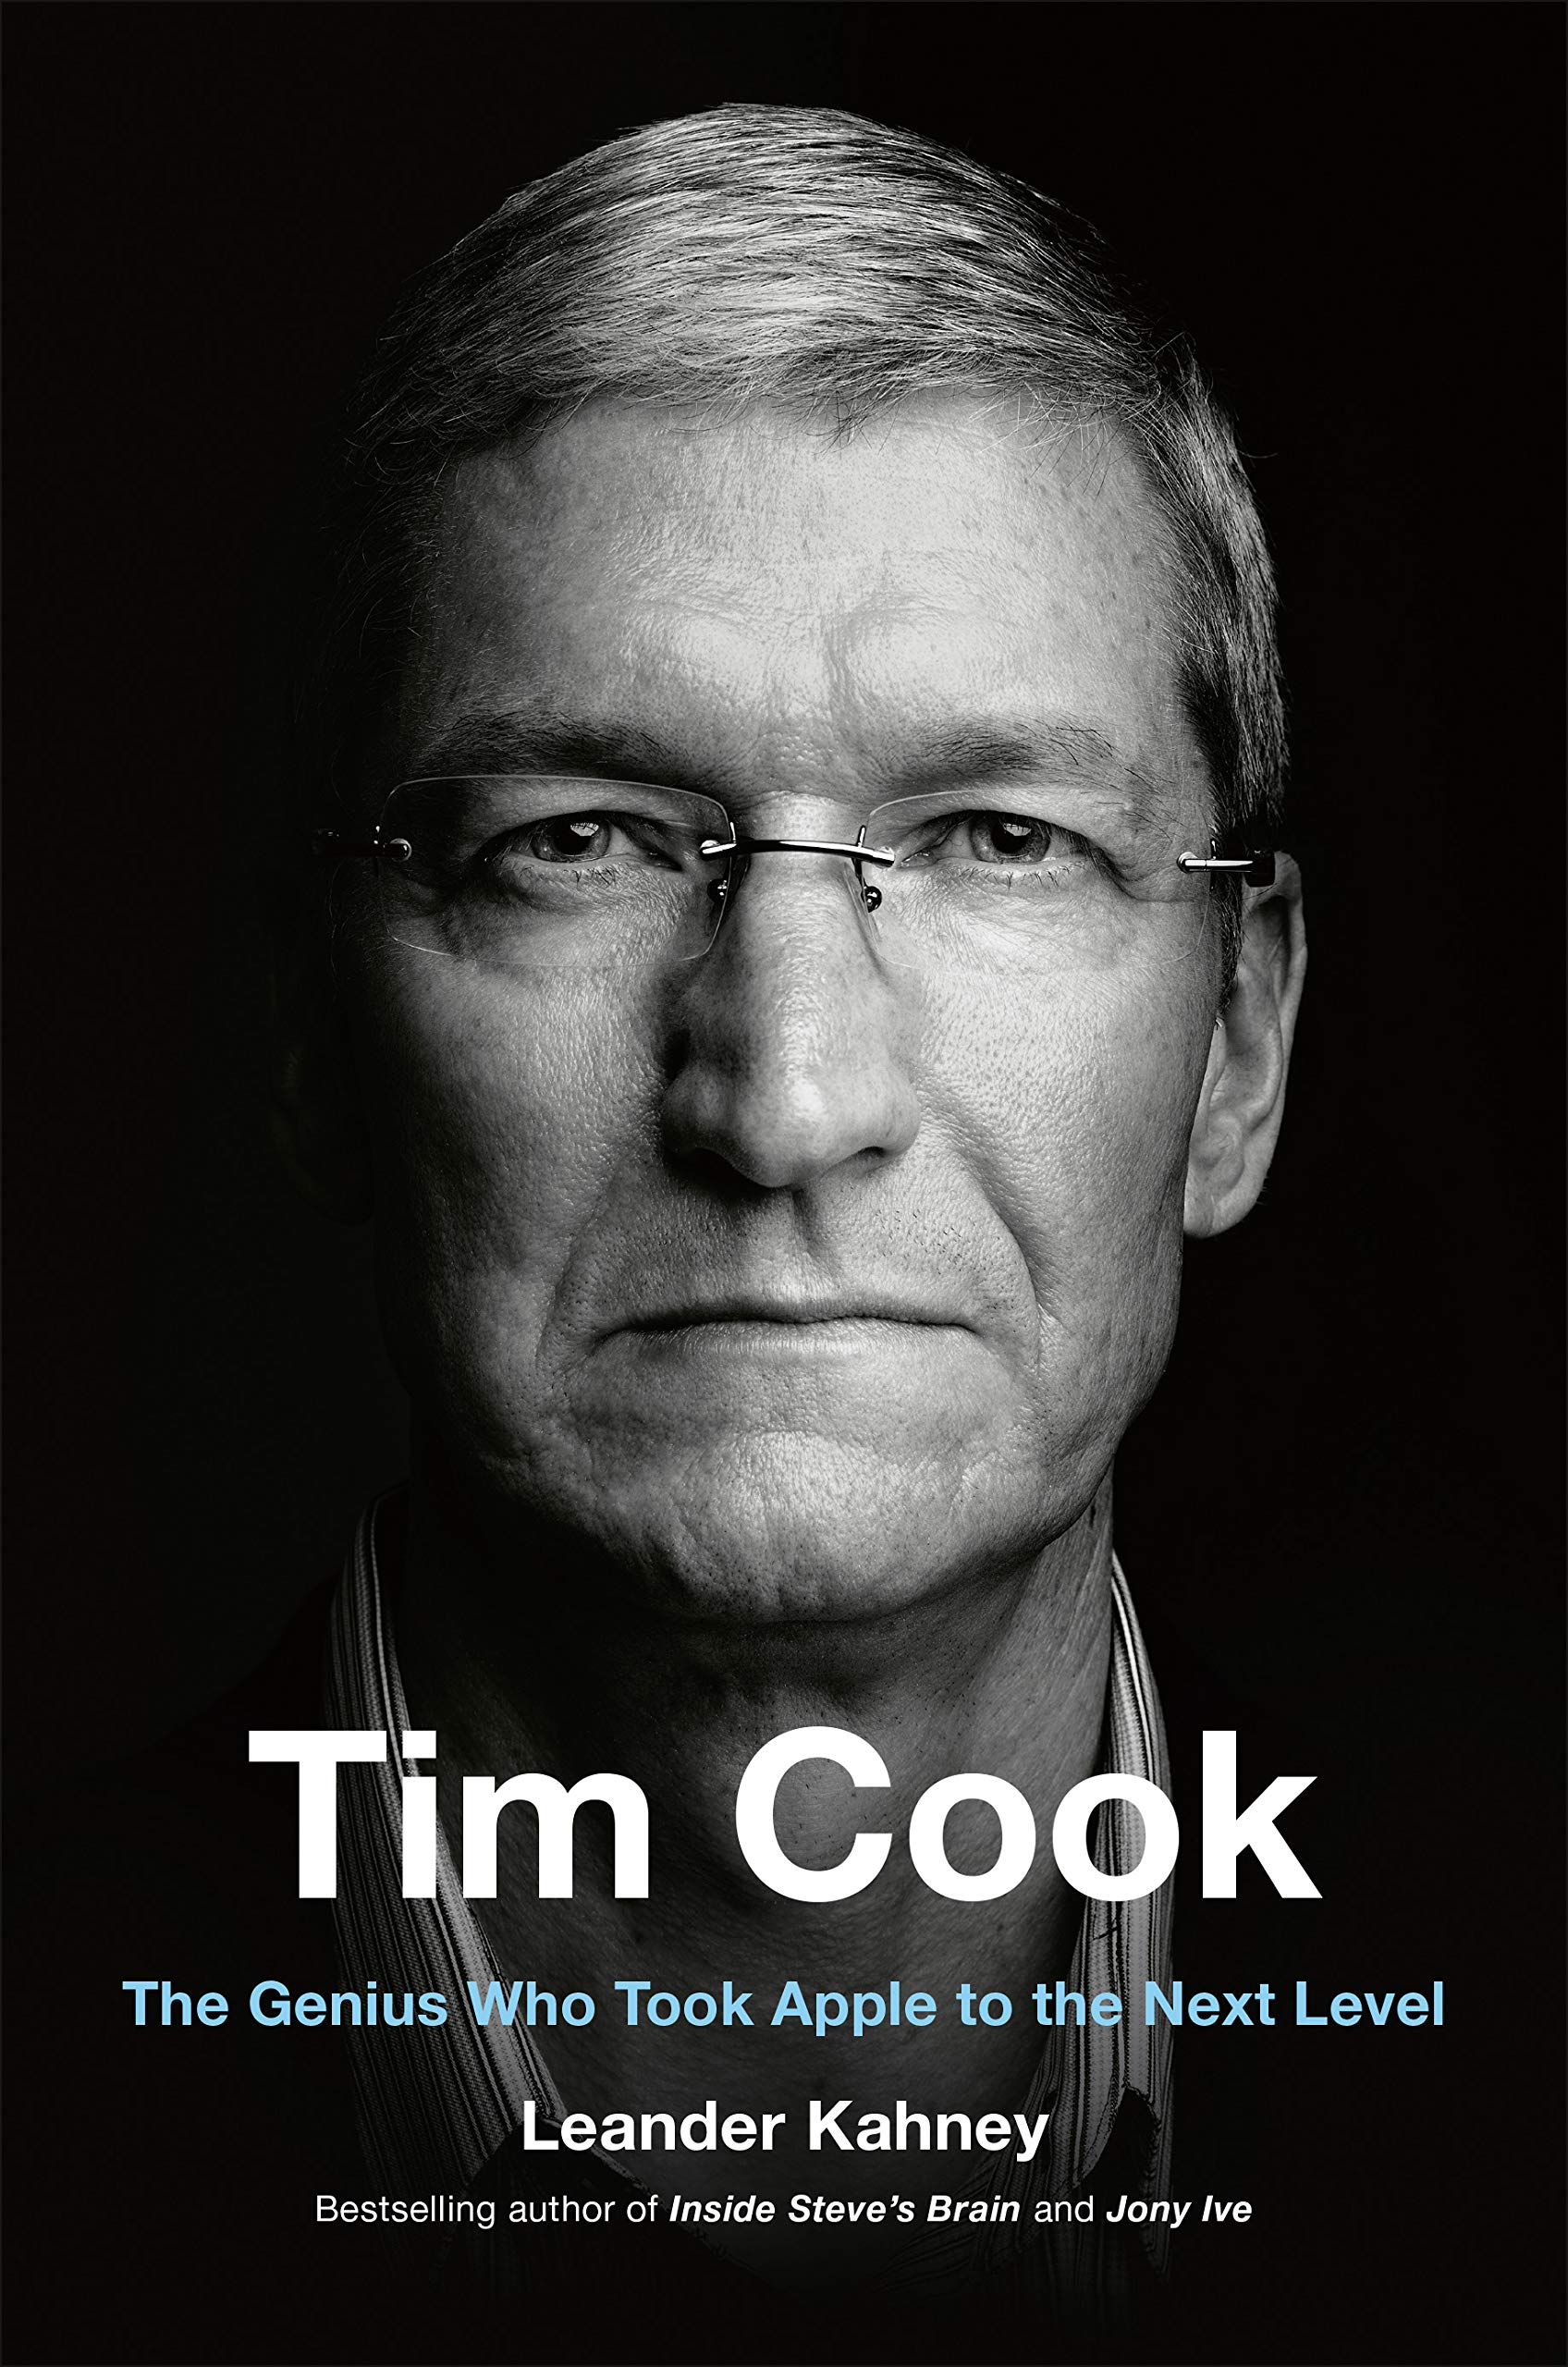 """Tim Cook: The Genius Who Took Apple to the Next Level"", biografia escrita por Leander Kahney"